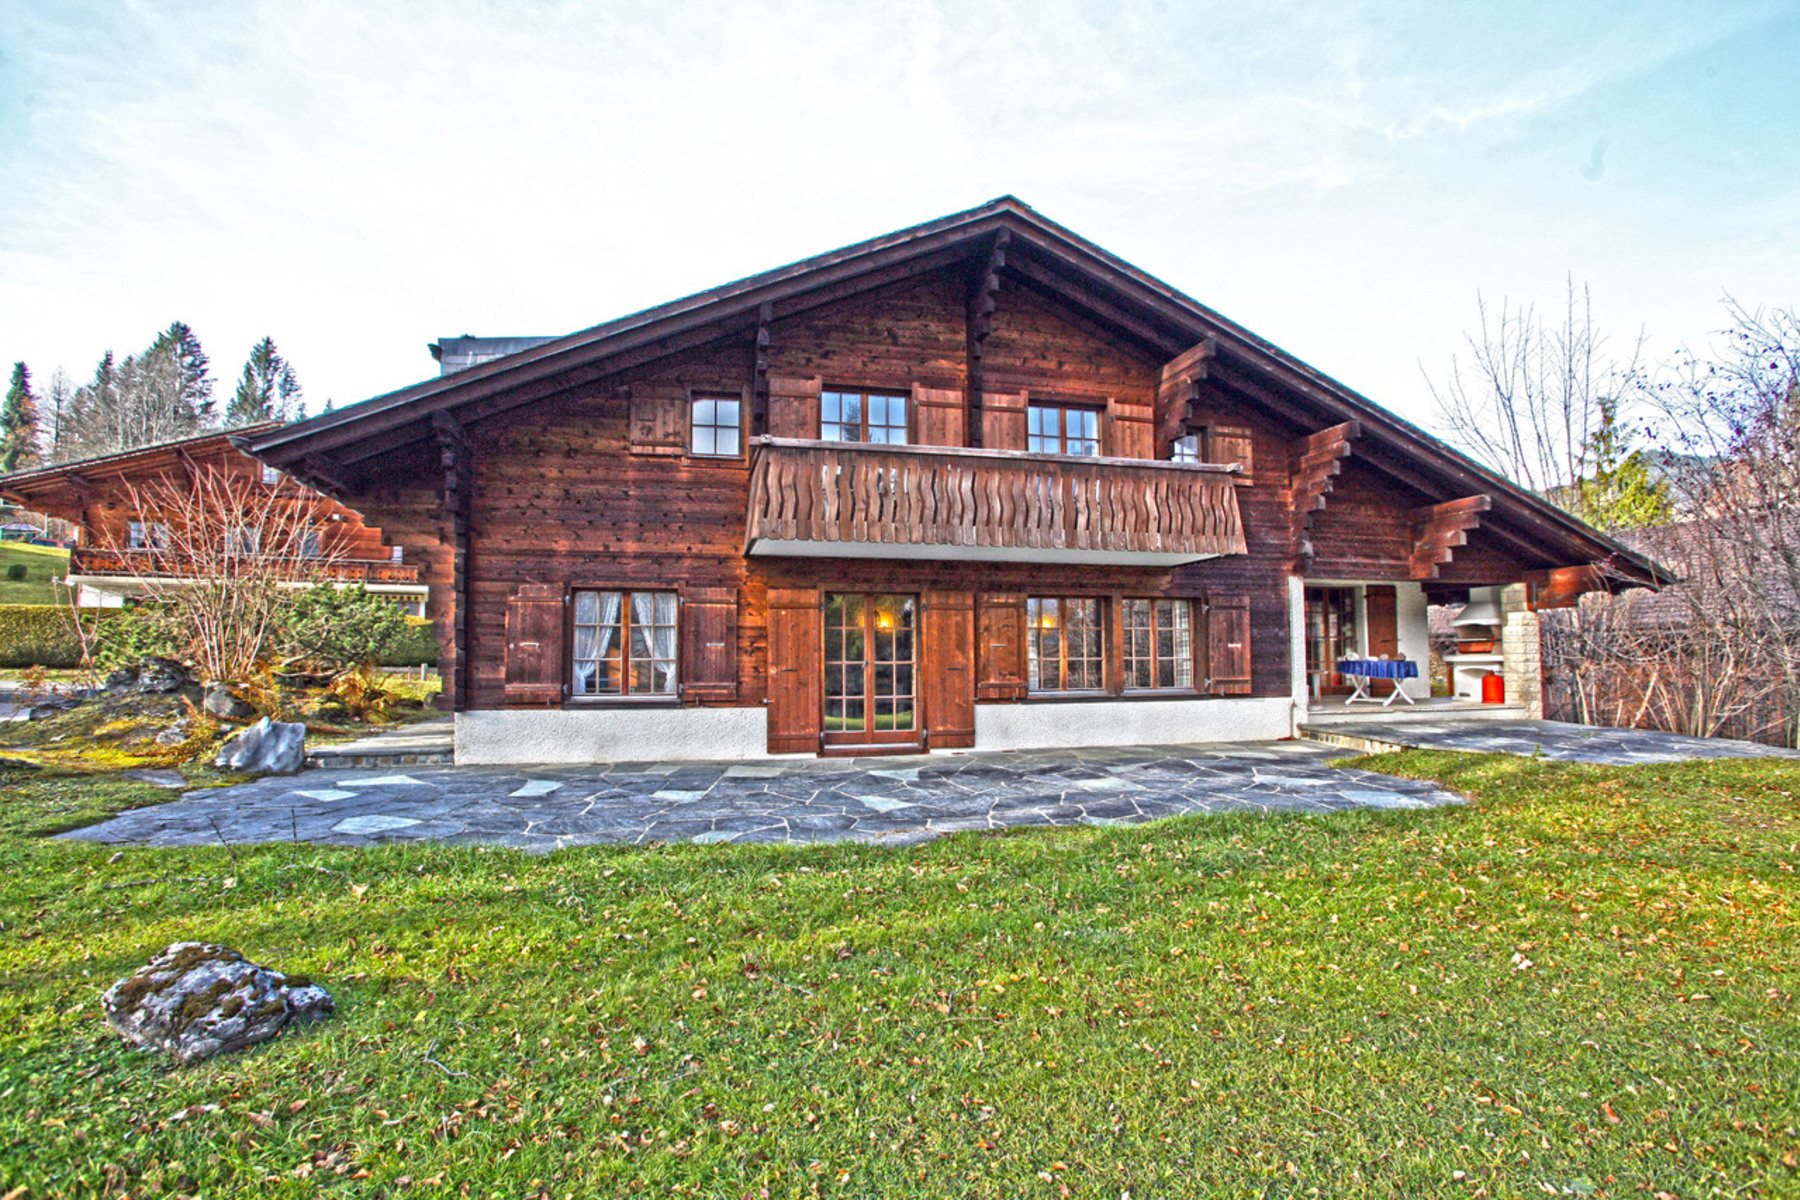 Single Family Home for Sale at Caroline Route des Renards 25 Gryon, Vaud 1882 Switzerland